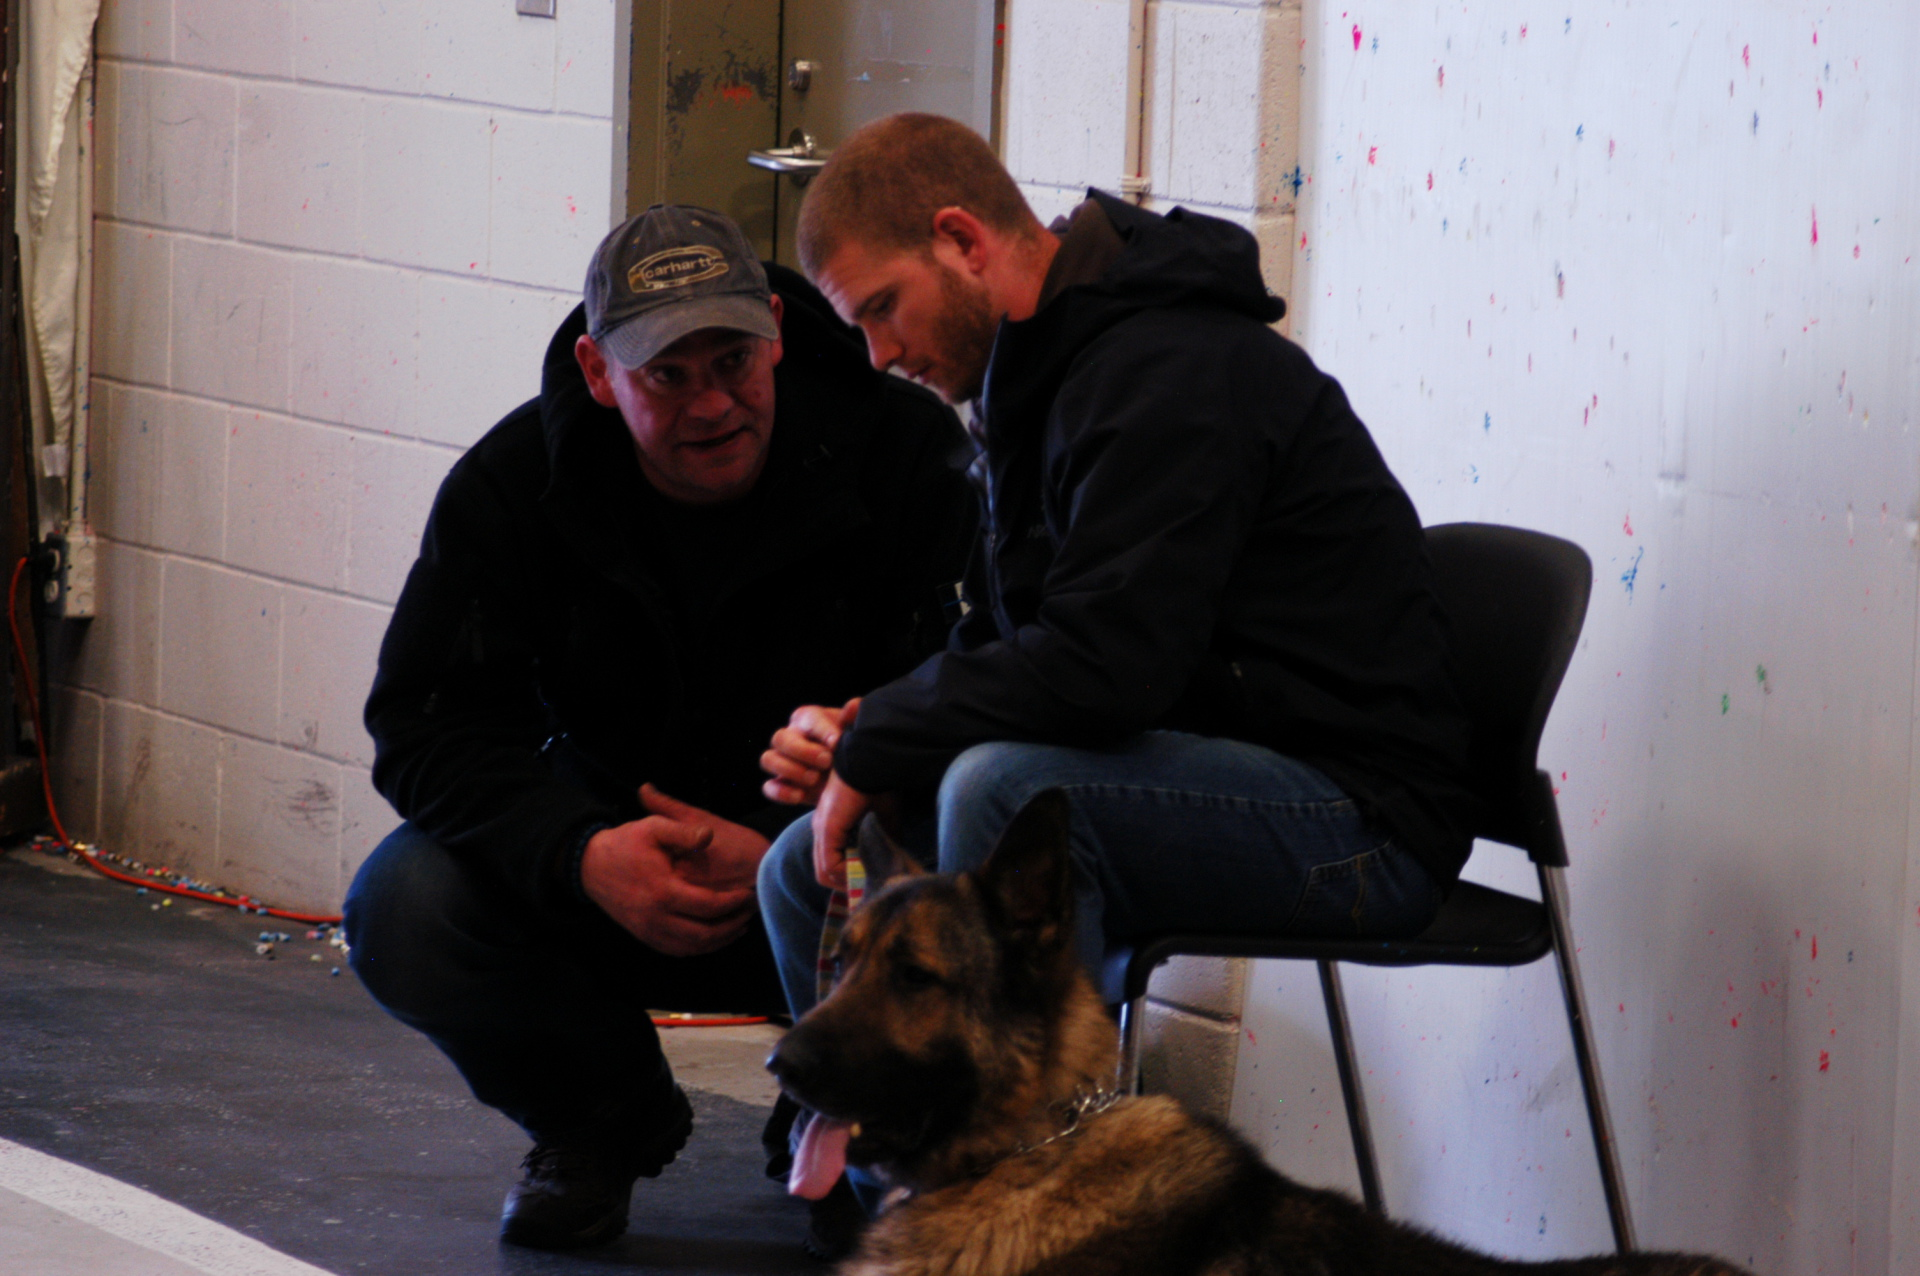 centurion k9 ptsd service dogs mental health peer support